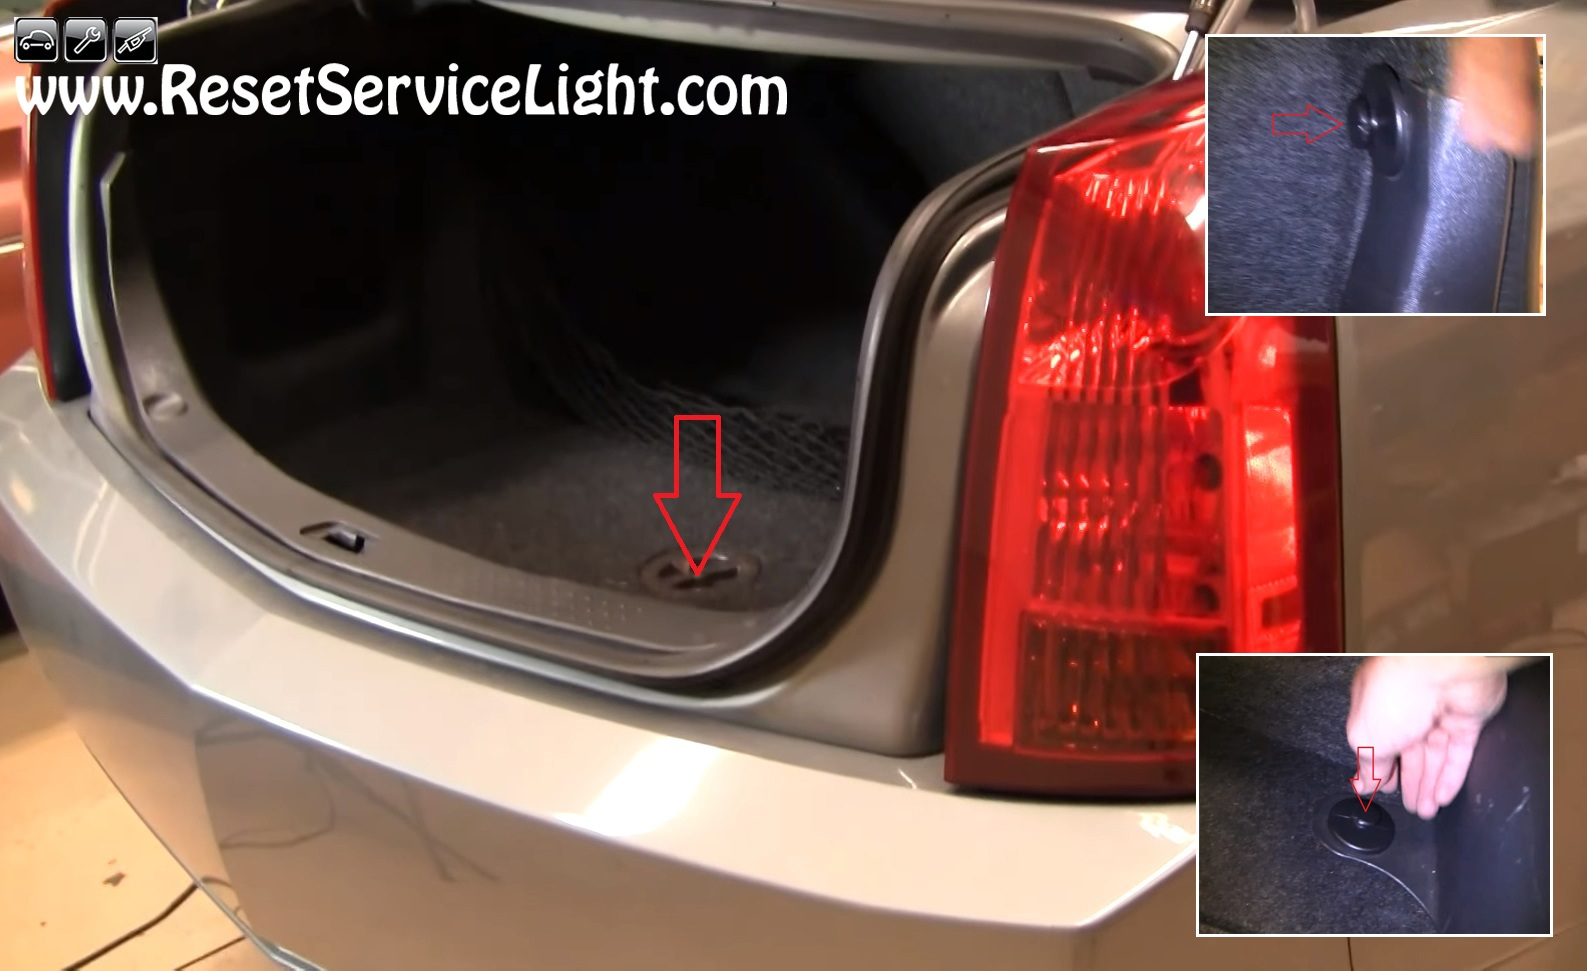 By Doing That You Will Gain Access Behind The Tail Light Where Find Two Bolts Secured 10 Mm Nuts As Can See In Picture Below